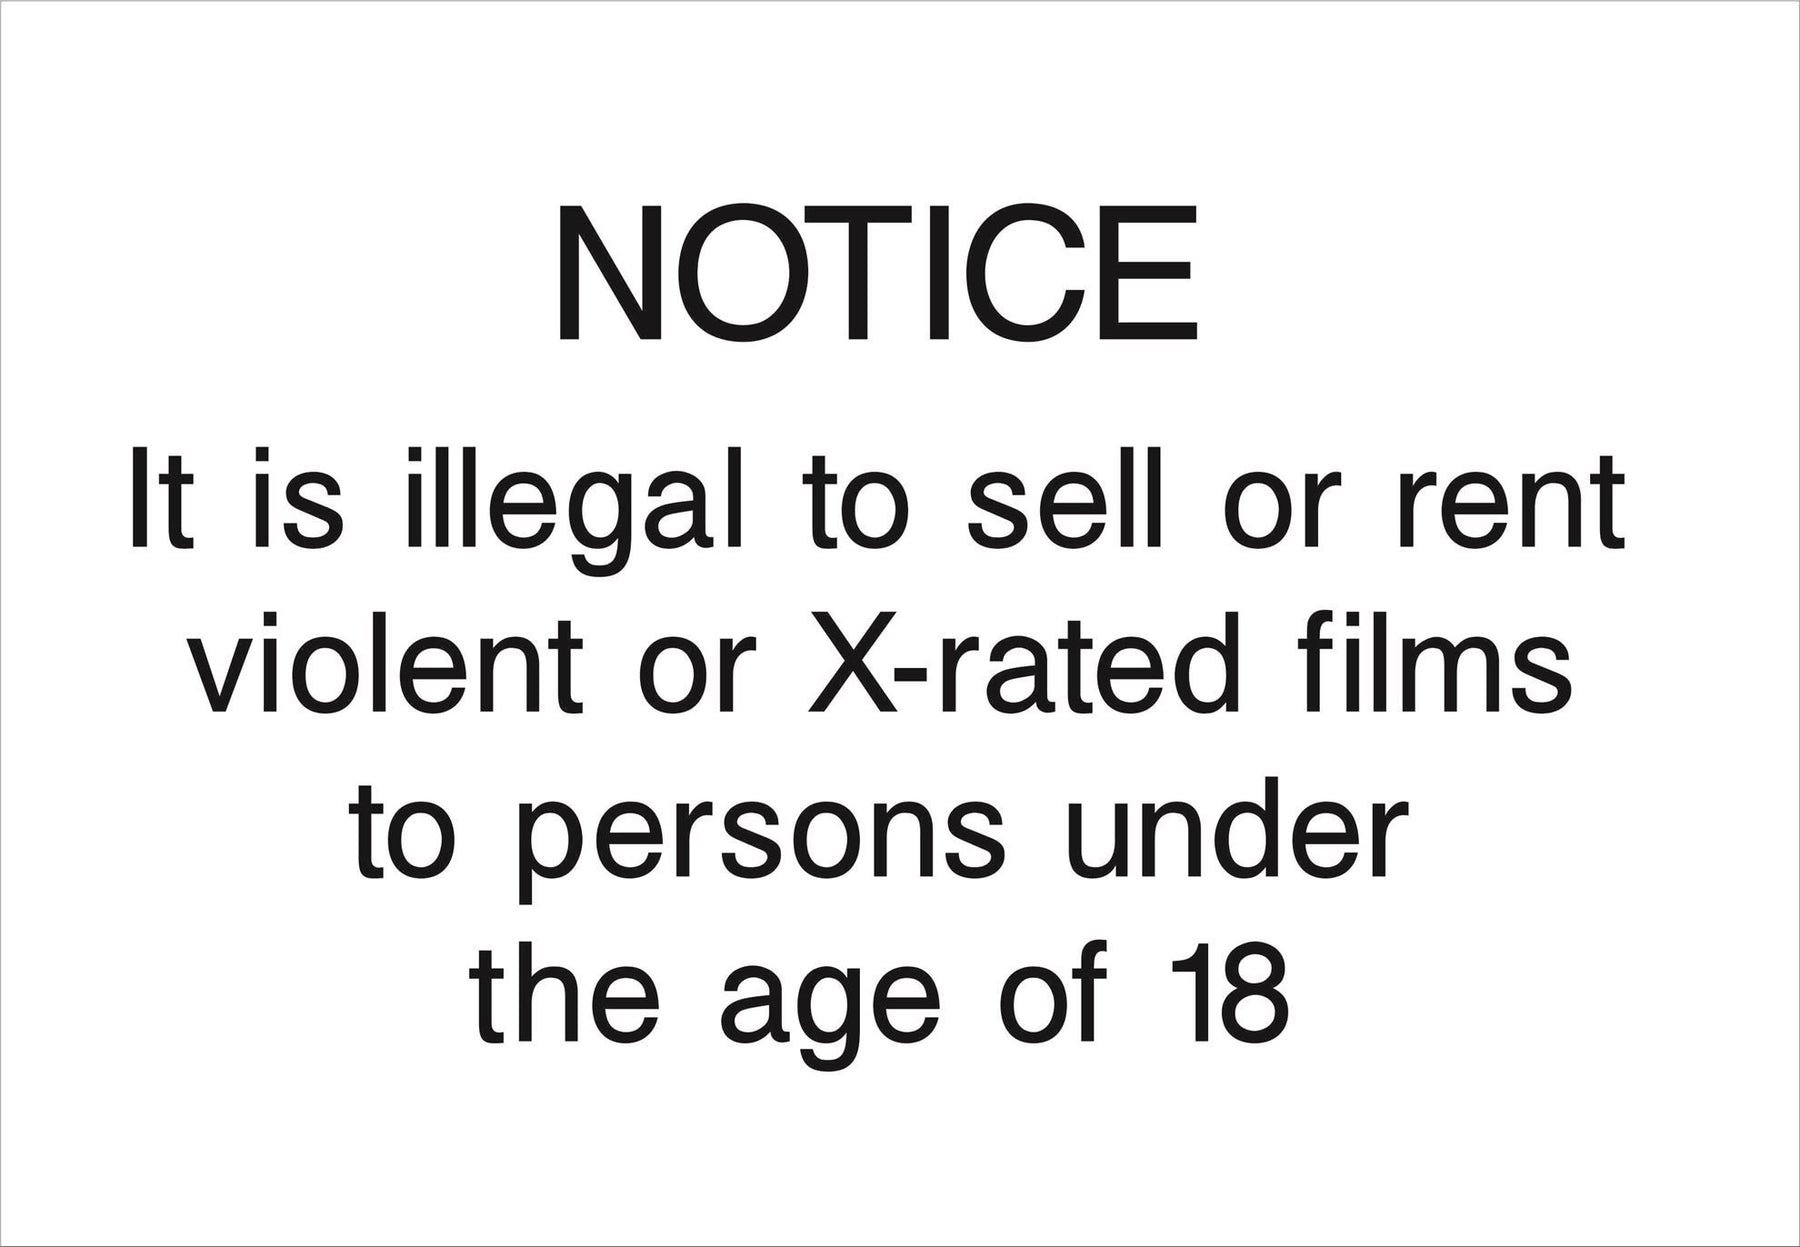 NOTICE It is illegal to sell or rent violent or X-rated films to persons under the age of 18